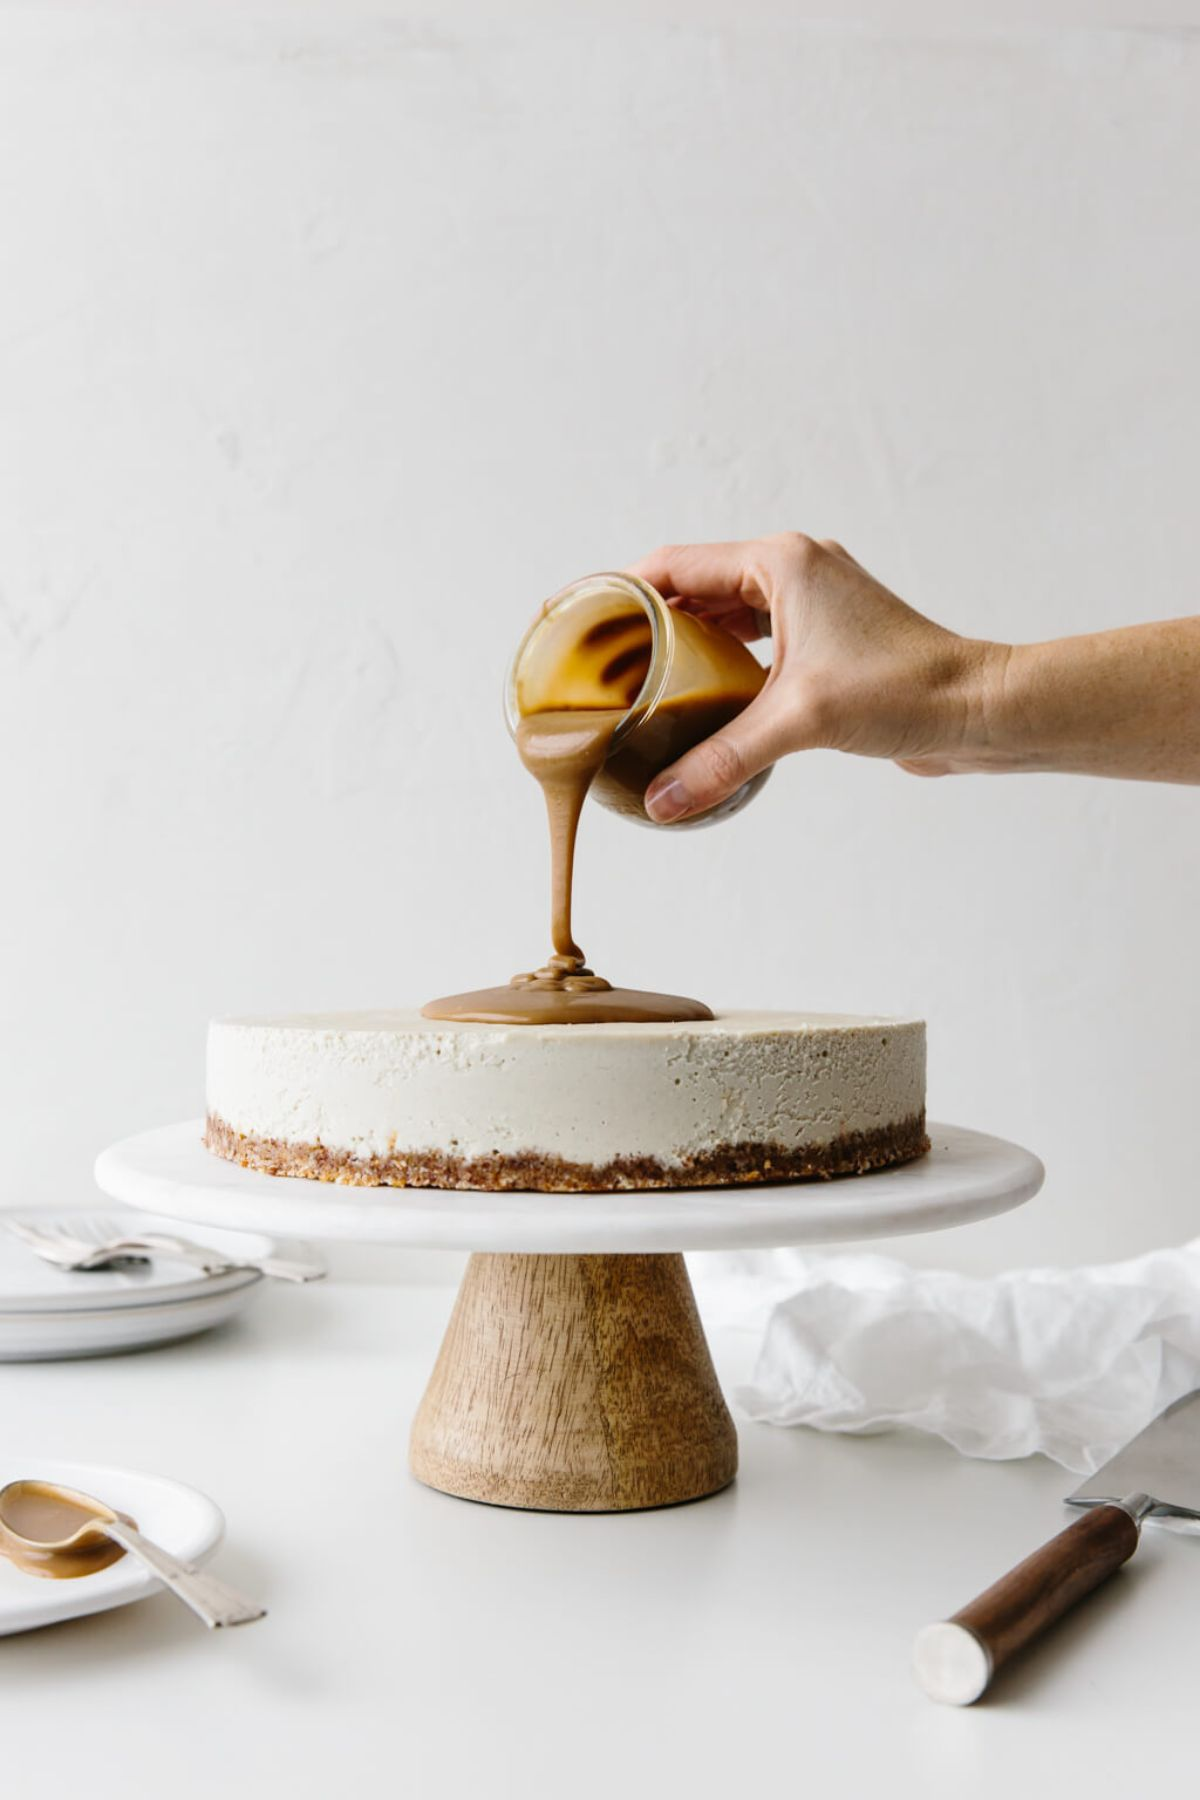 a cake stand with a vanilla cheesecake on it. A hand is pouring caramel sauce from a jar onto the top